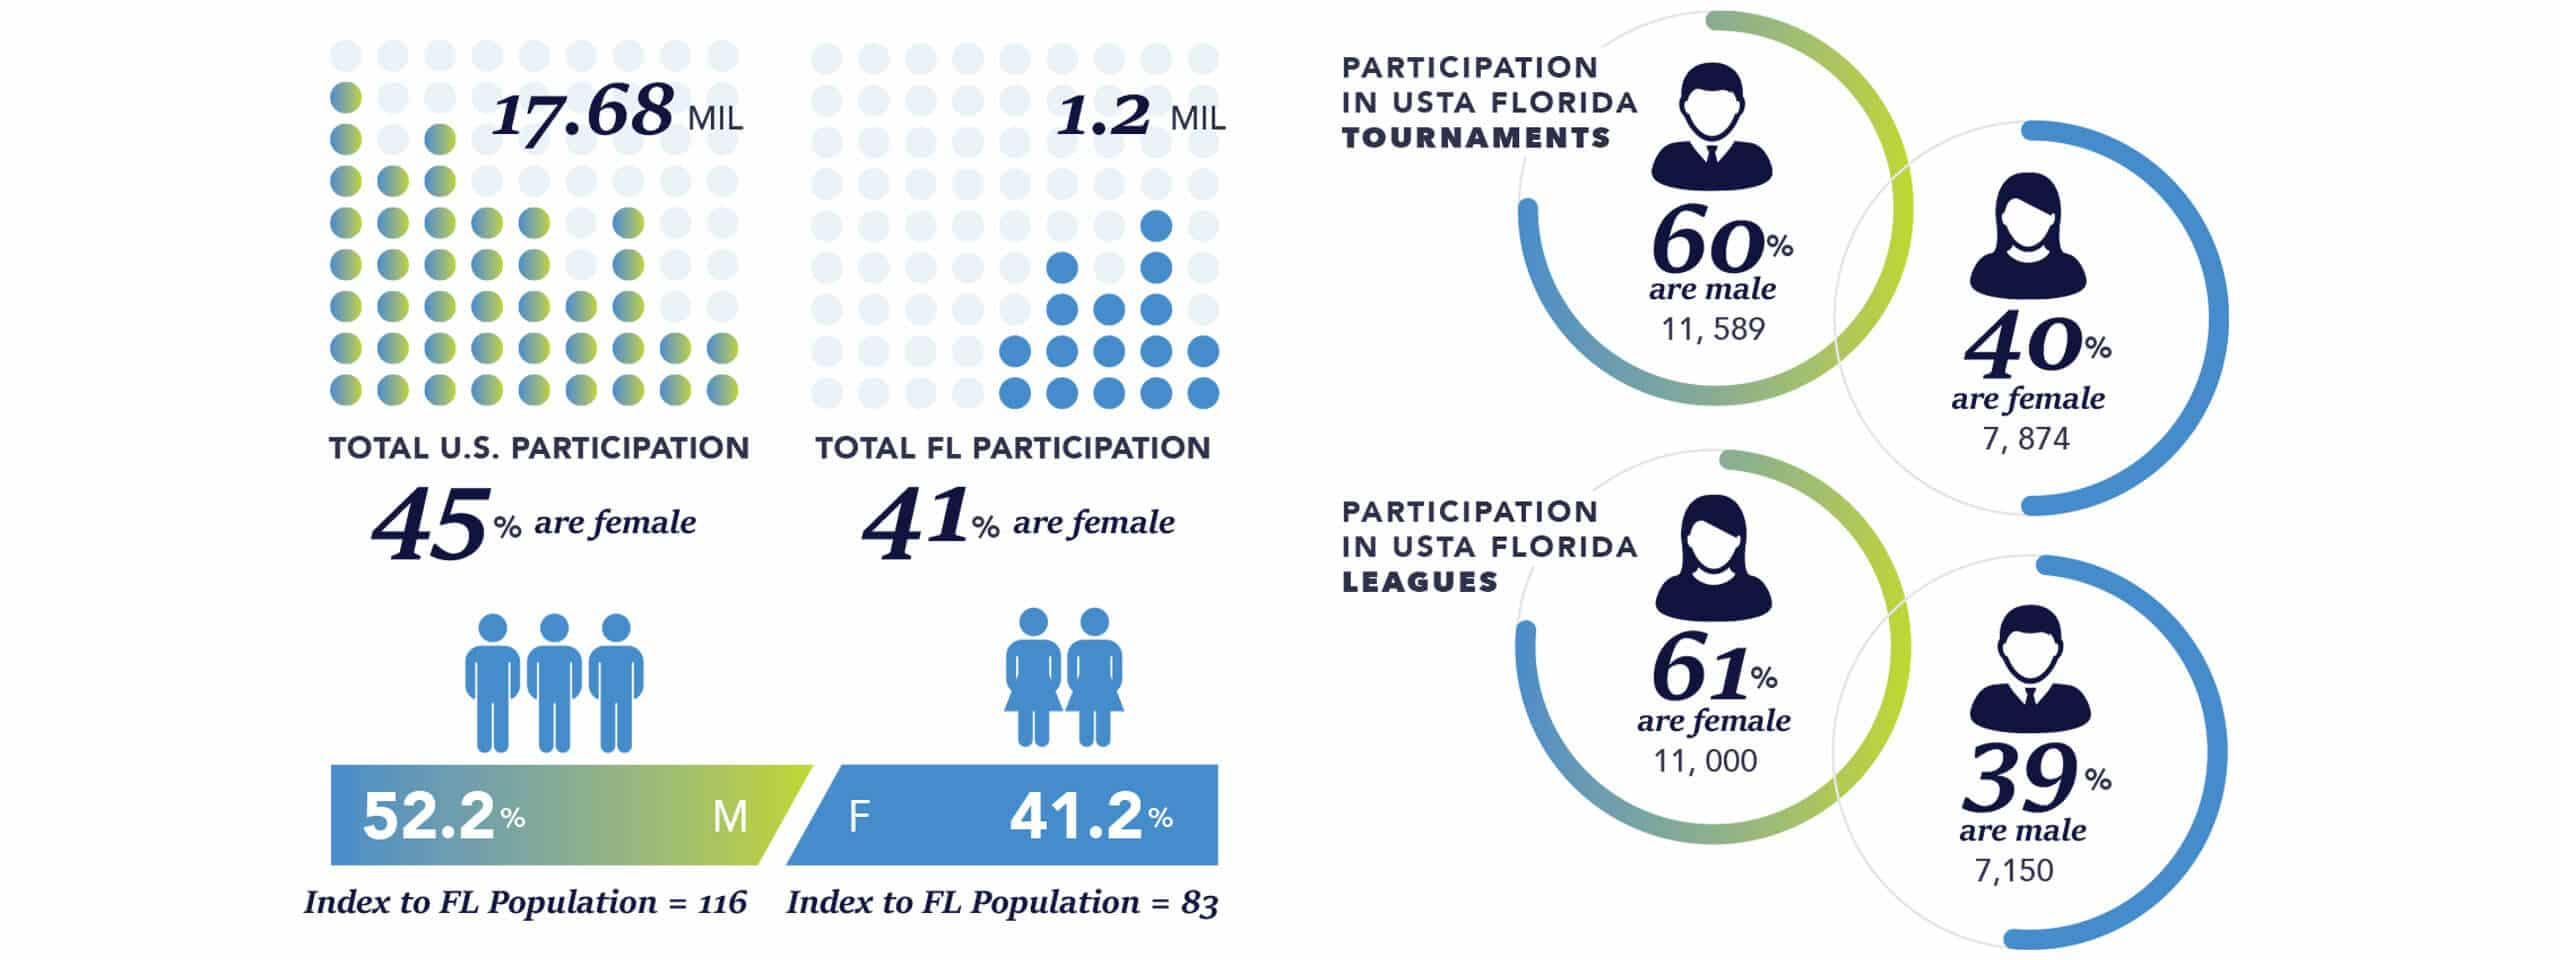 Source: USTA and the 2020 USTA Tennis Participation Report